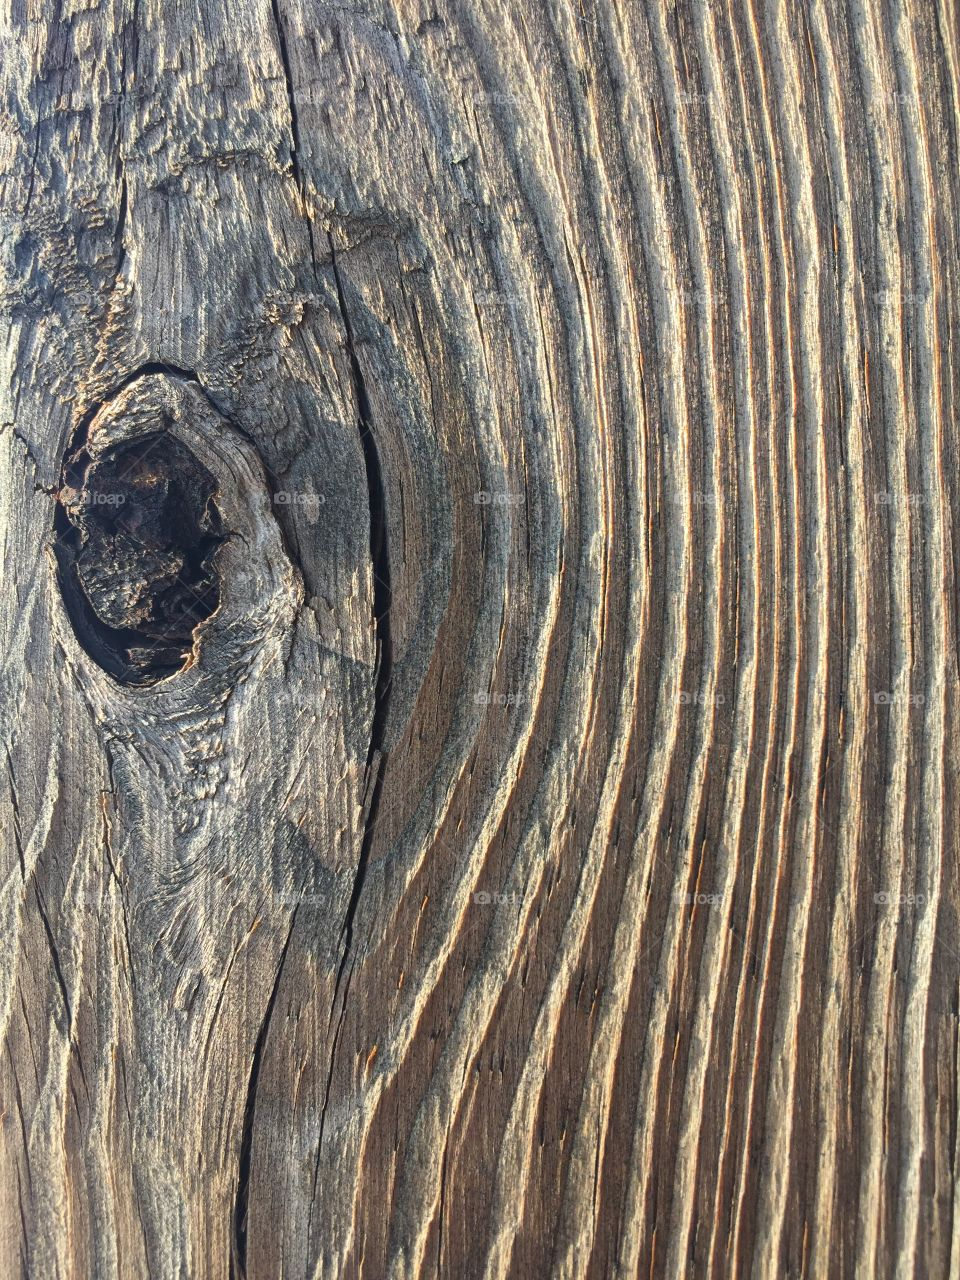 Closeup of the texture of weathered lumber